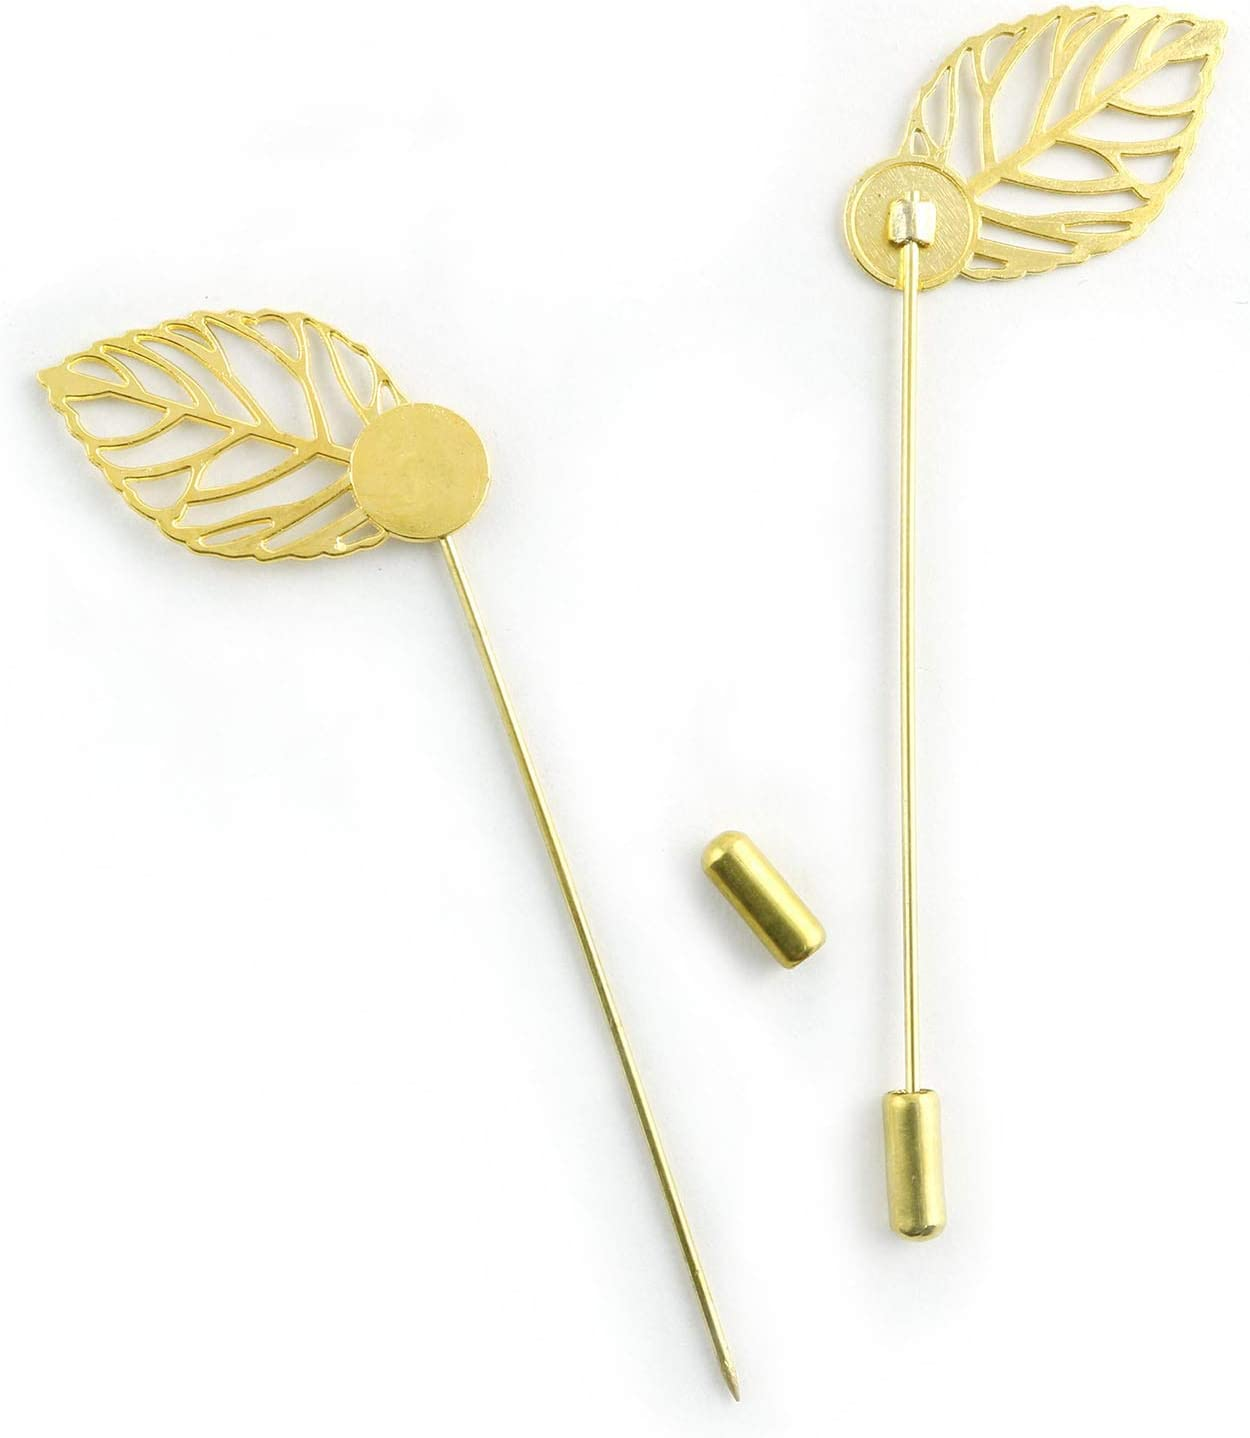 NX Garden 20pcs Leaf Brooch Metal Round Tray Stick Lapel Pin DIY Handmade Jewelry Findings Long Needle Pin for Badge Scarf Hat Safety Pins Gold